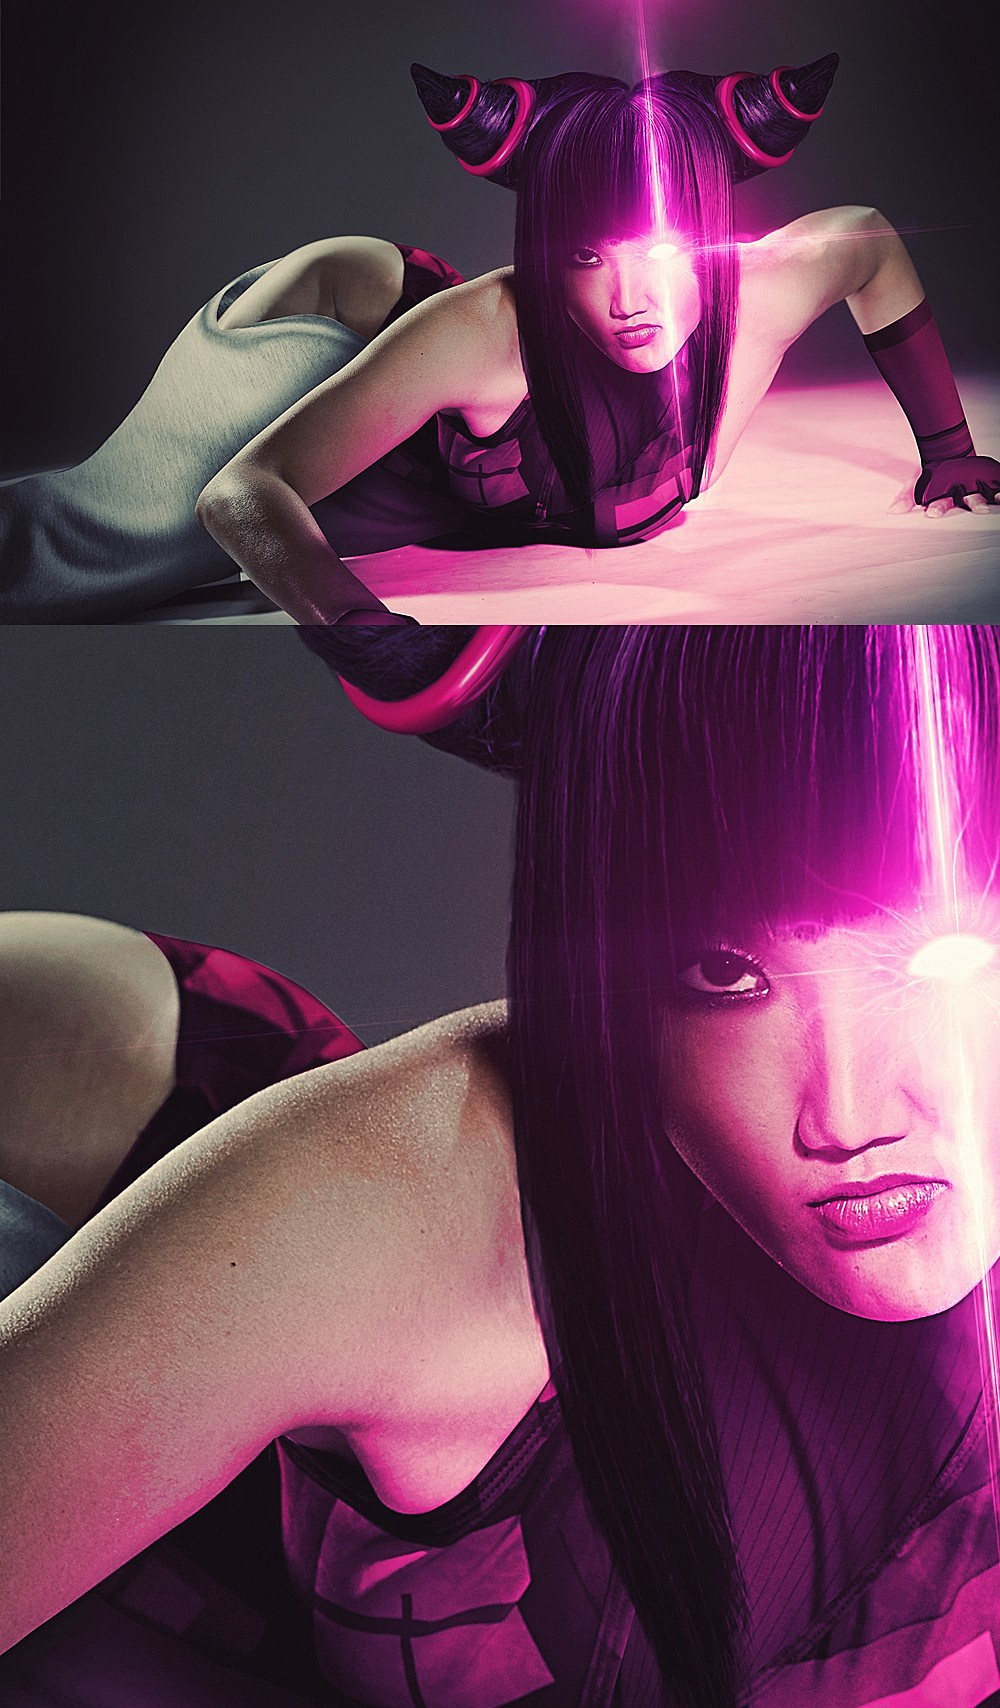 Hyper Real Super Street Fighter IV Art Featuring SIN Agent Juri src=